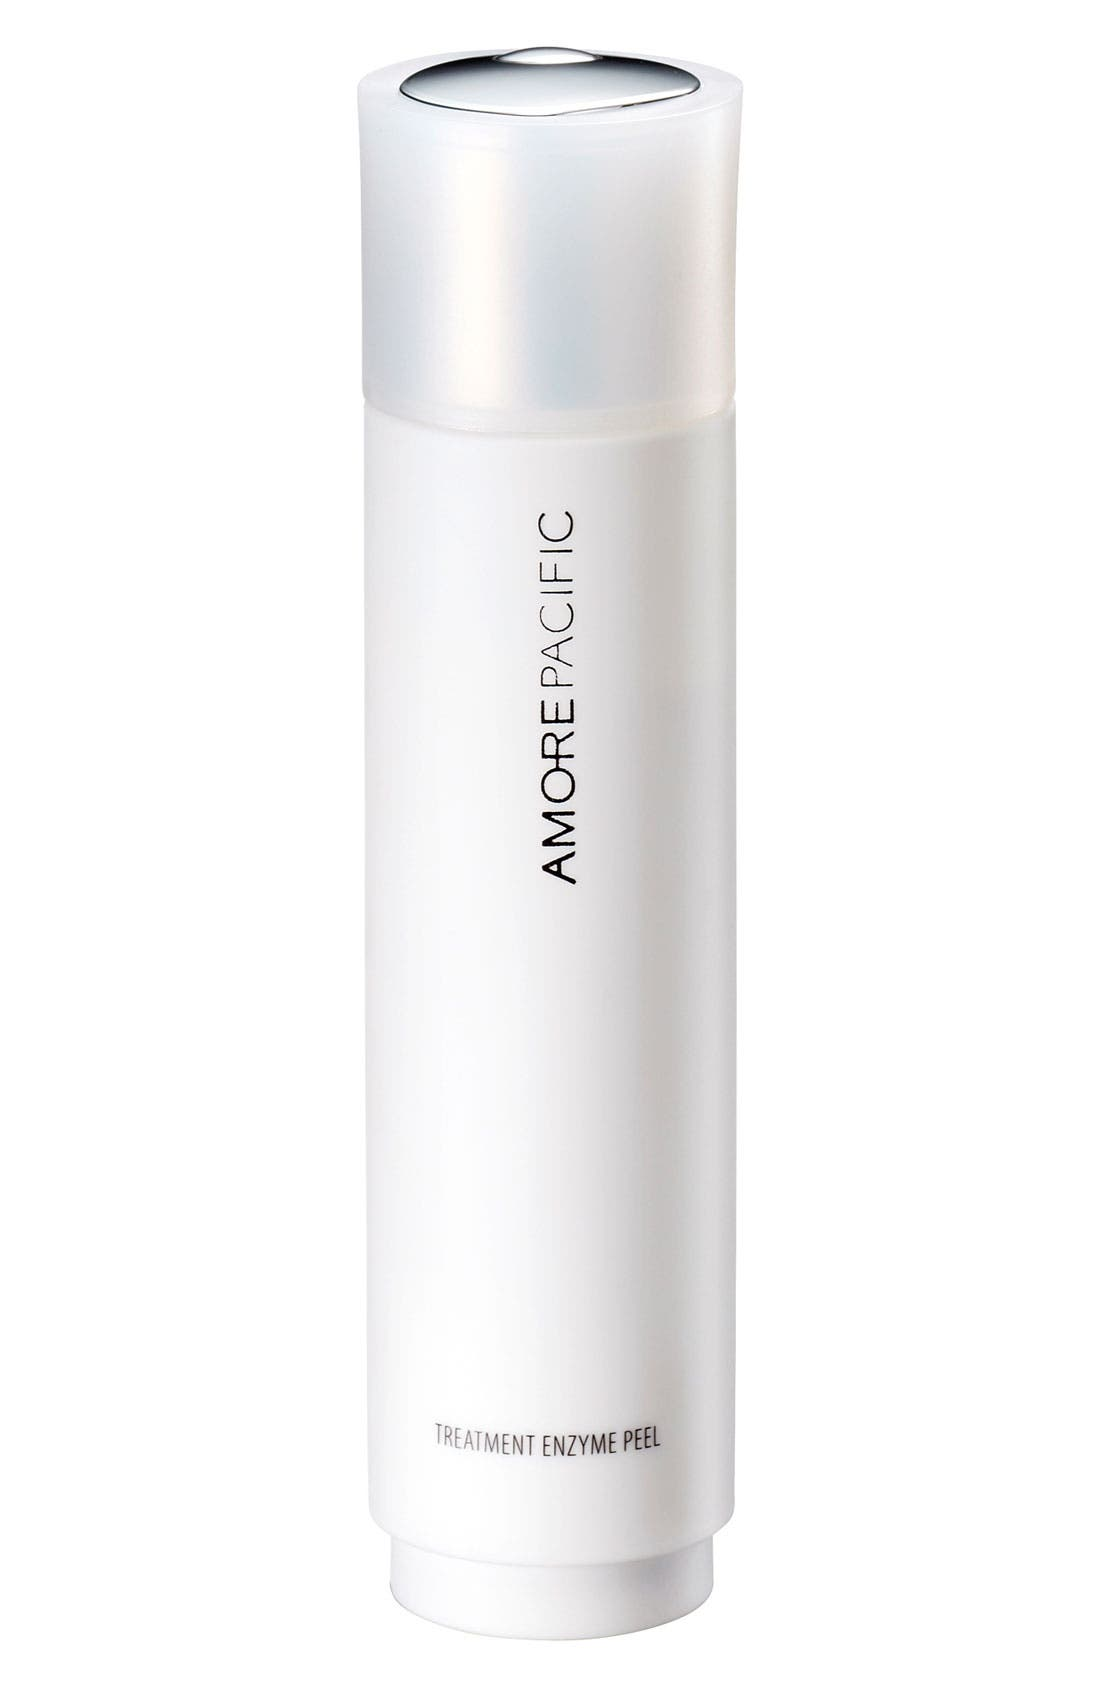 AMOREPACIFIC Treatment Enzyme Peel Exfoliator